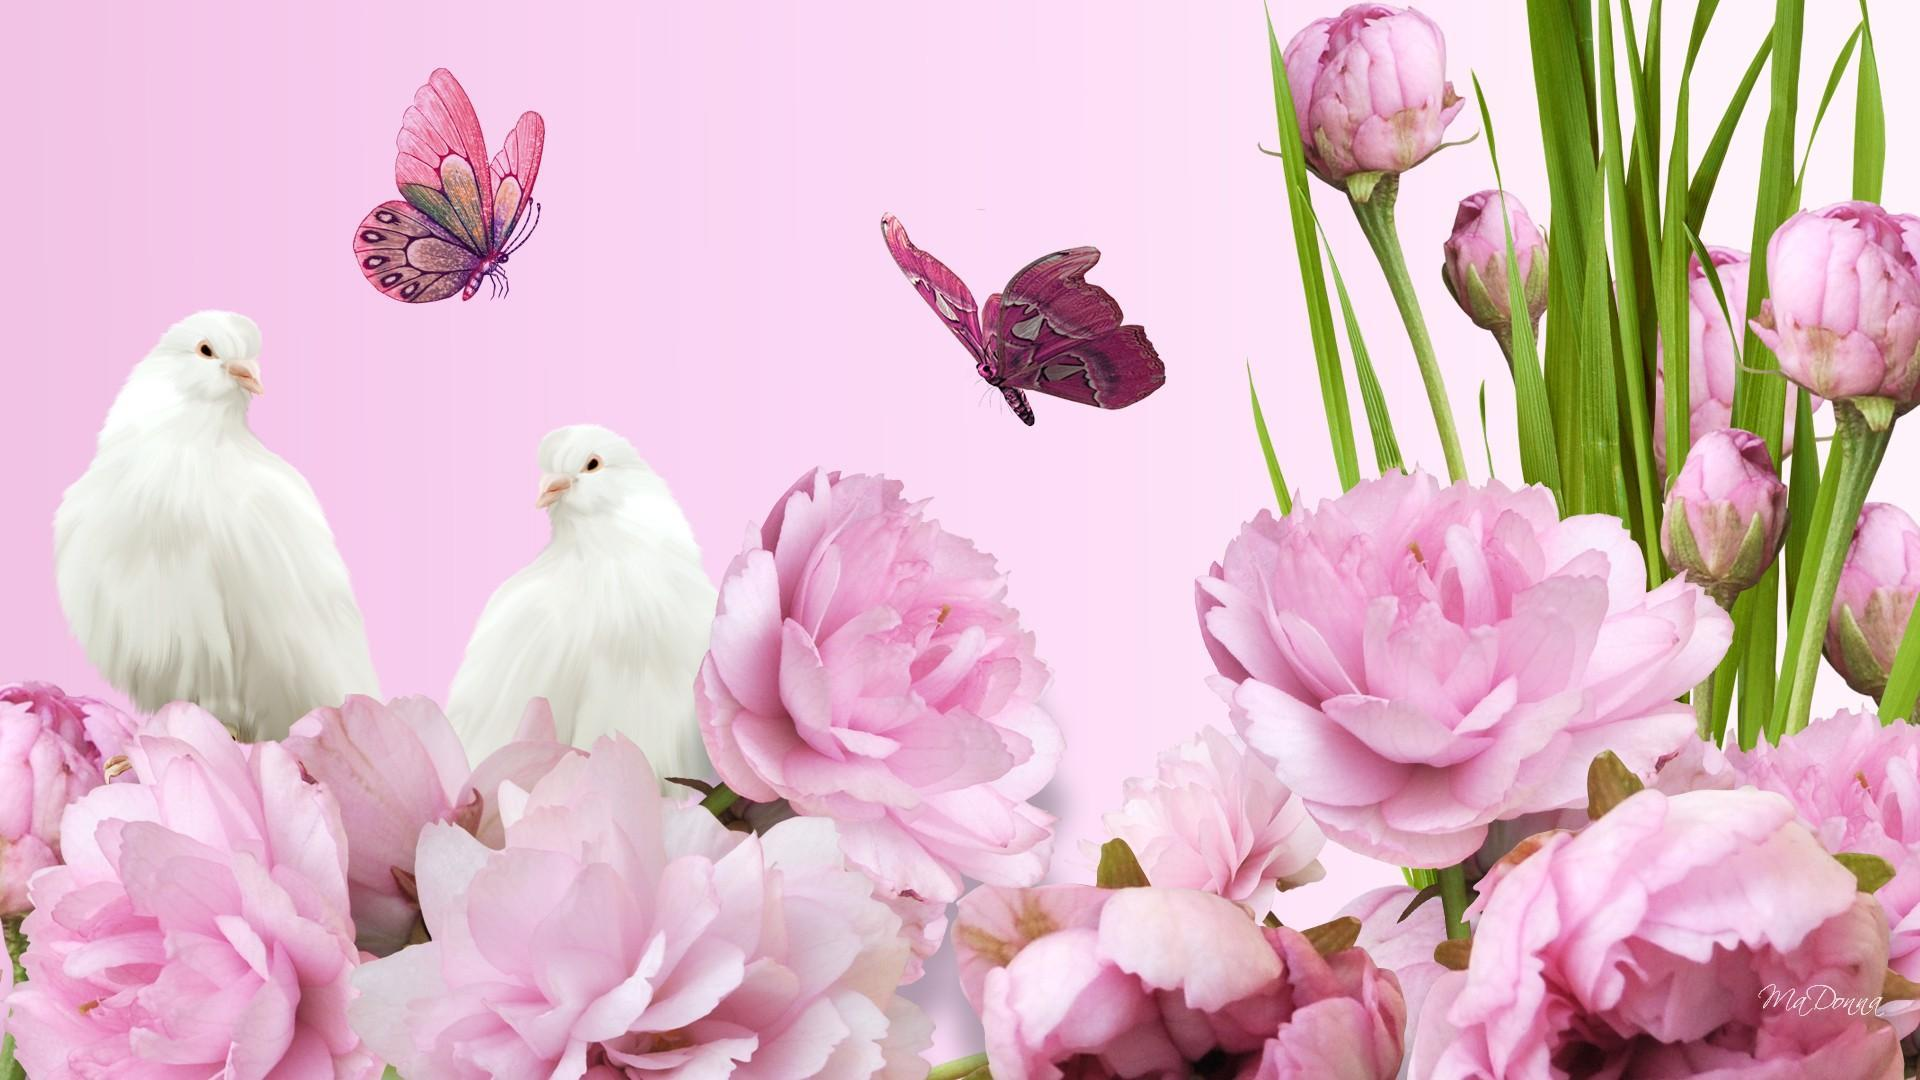 wallpapers wide 1366x768 pink - photo #28